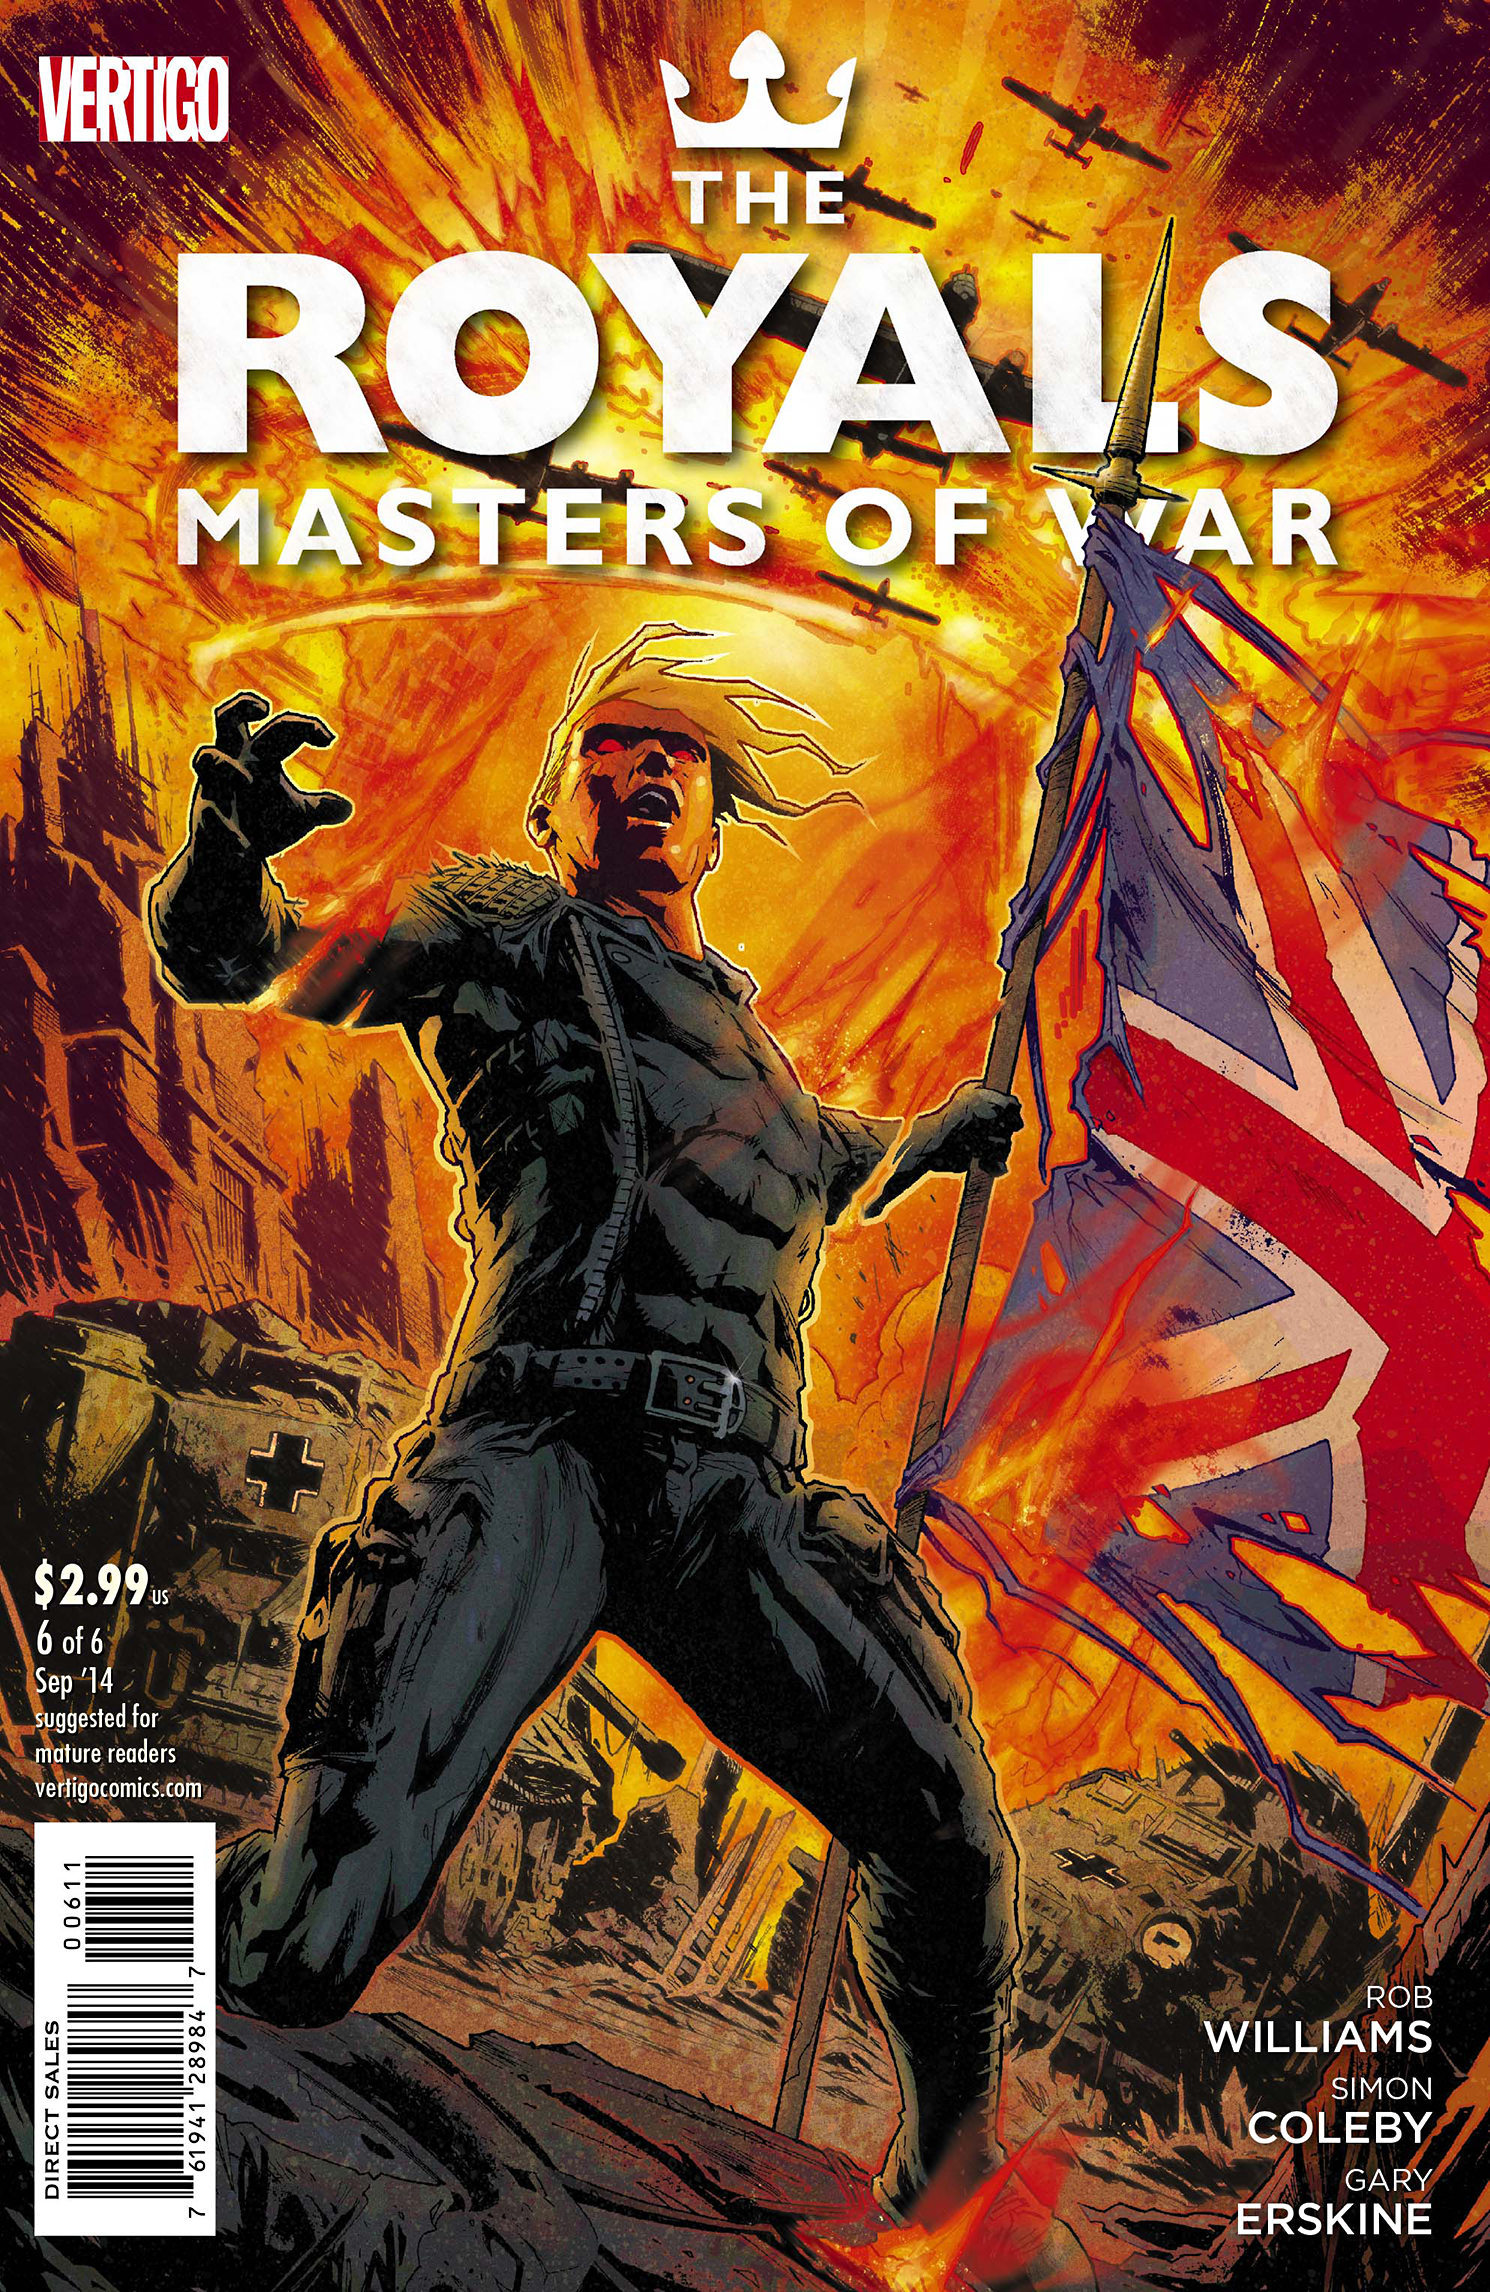 ROYALS MASTERS OF WAR #6 (OF 6)